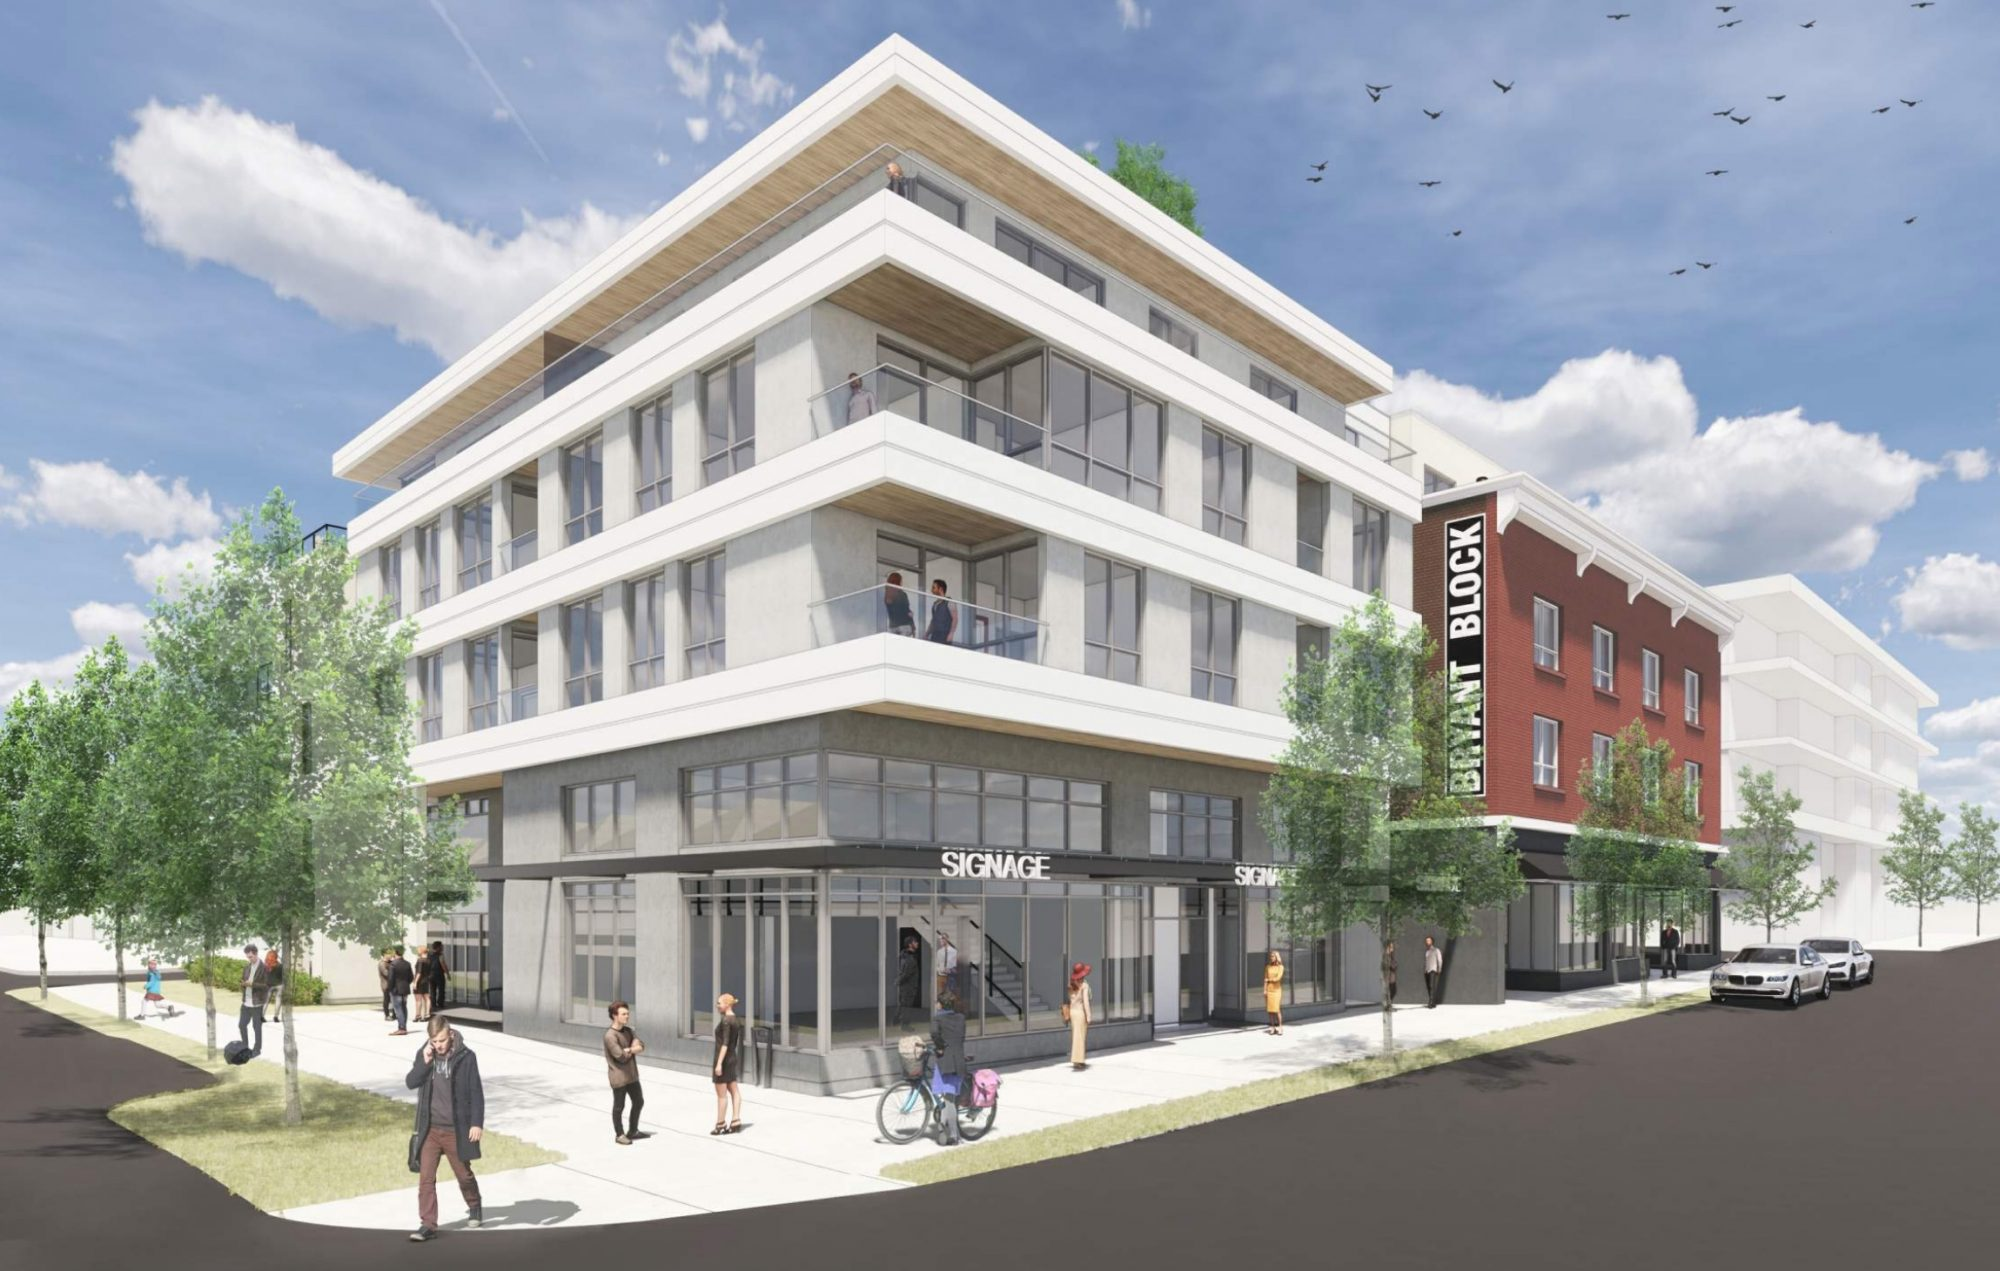 Addition to heritage building at Main & 19th in Mount Pleasant